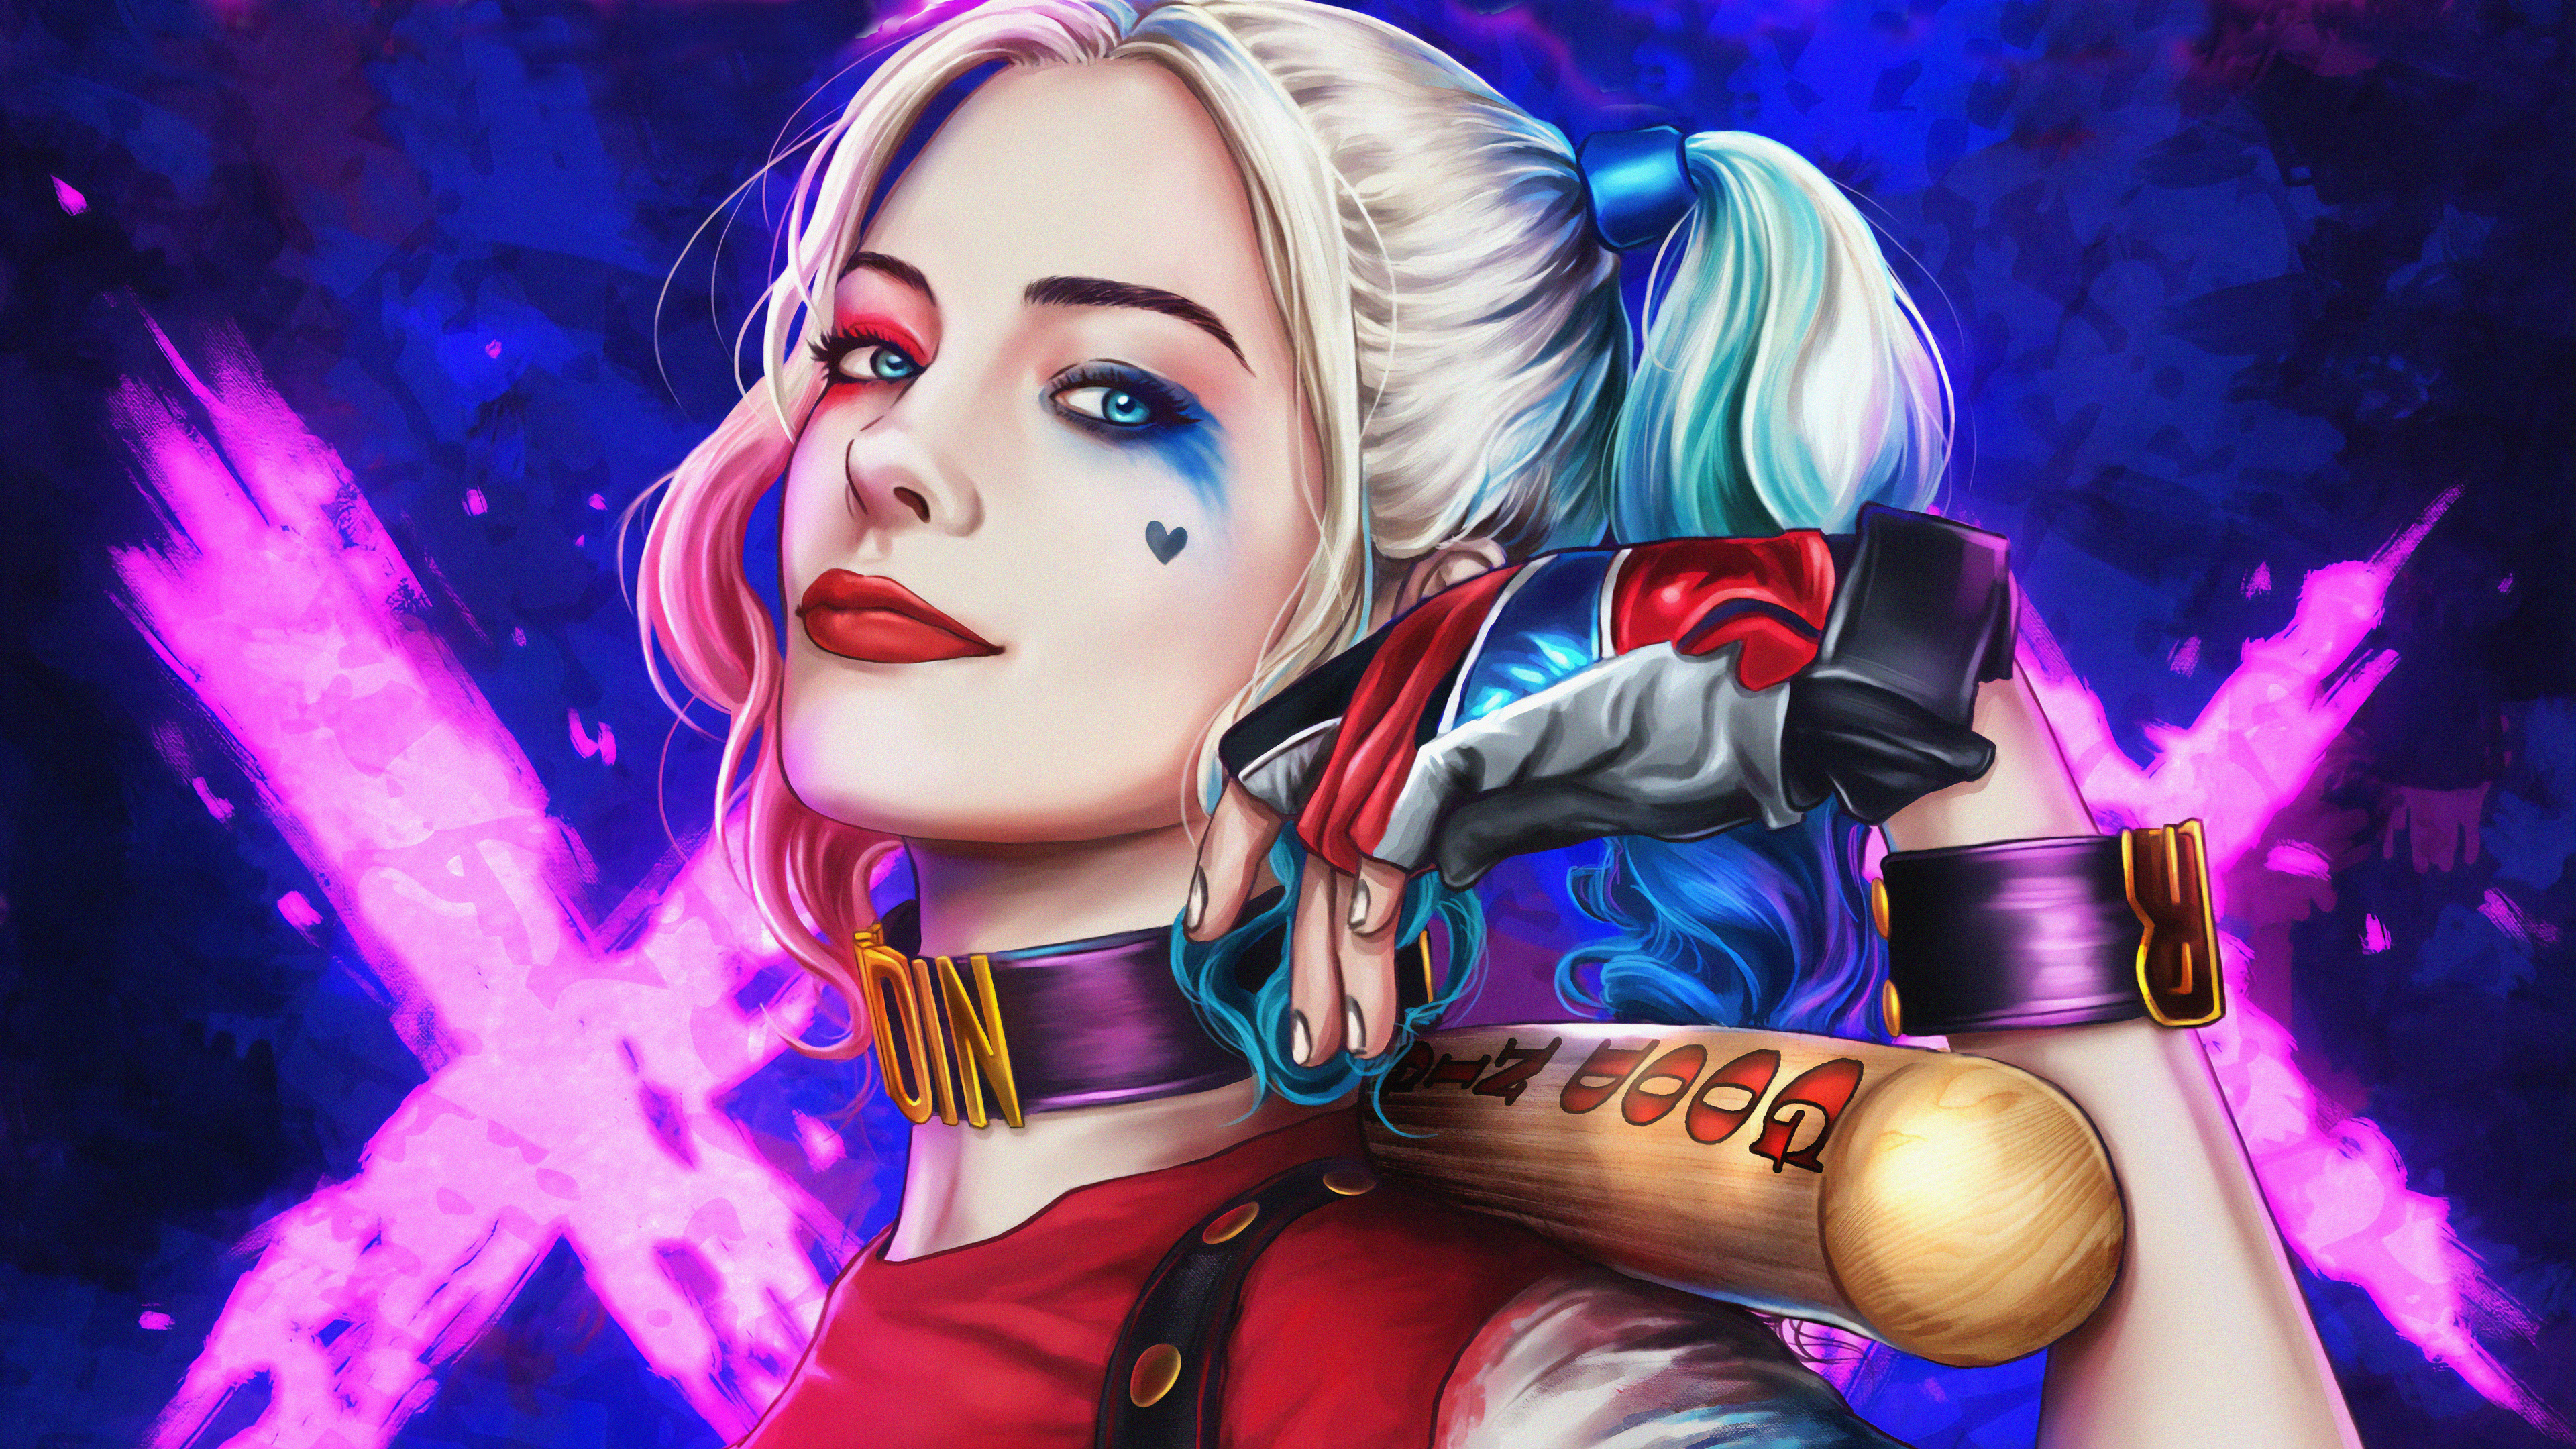 Harley Quinn 4k Ultra HD Wallpaper